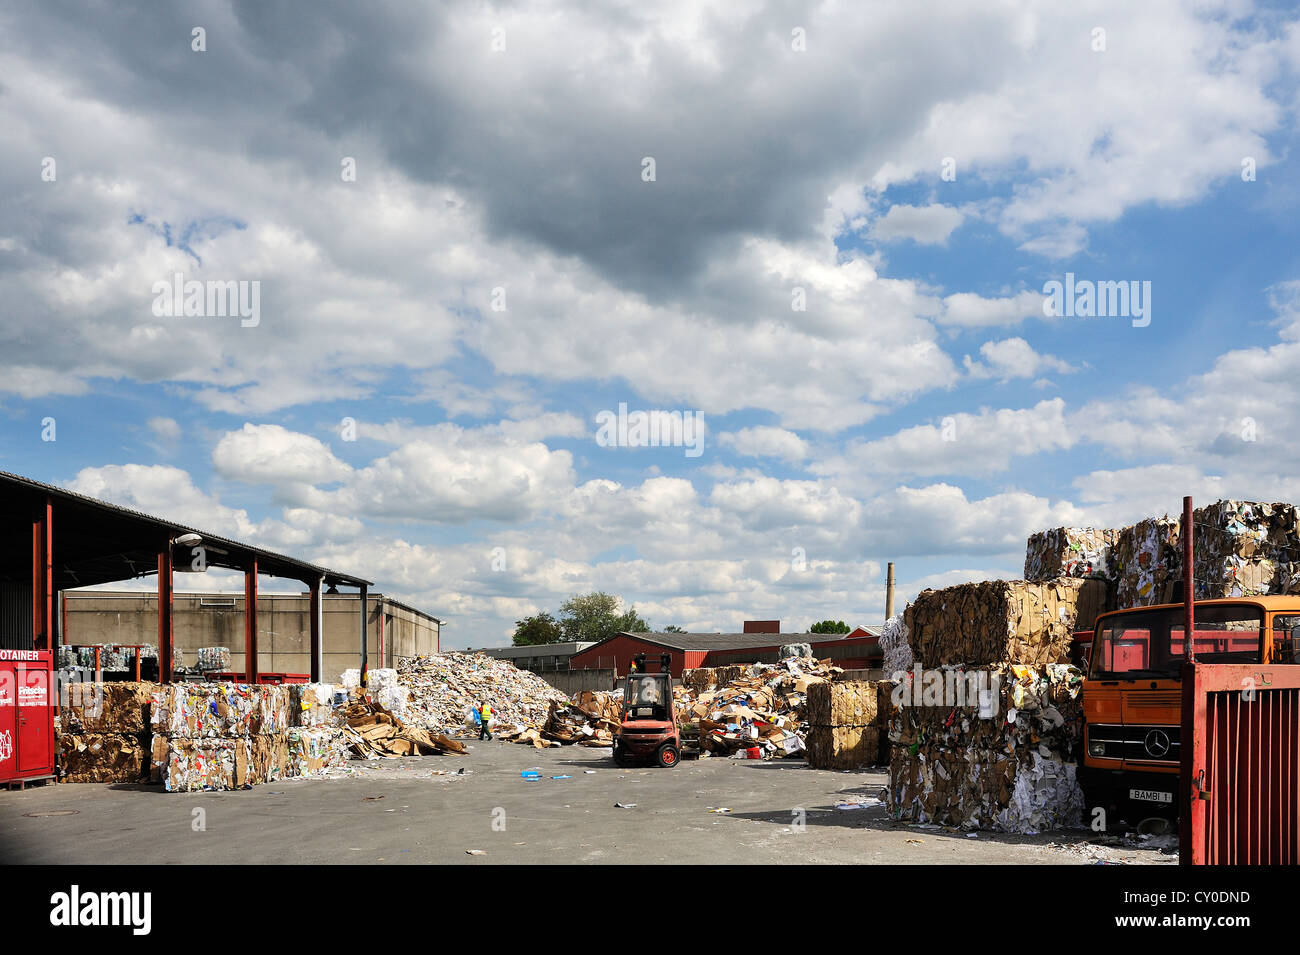 Recycle Company Stock Photos & Recycle Company Stock Images - Alamy